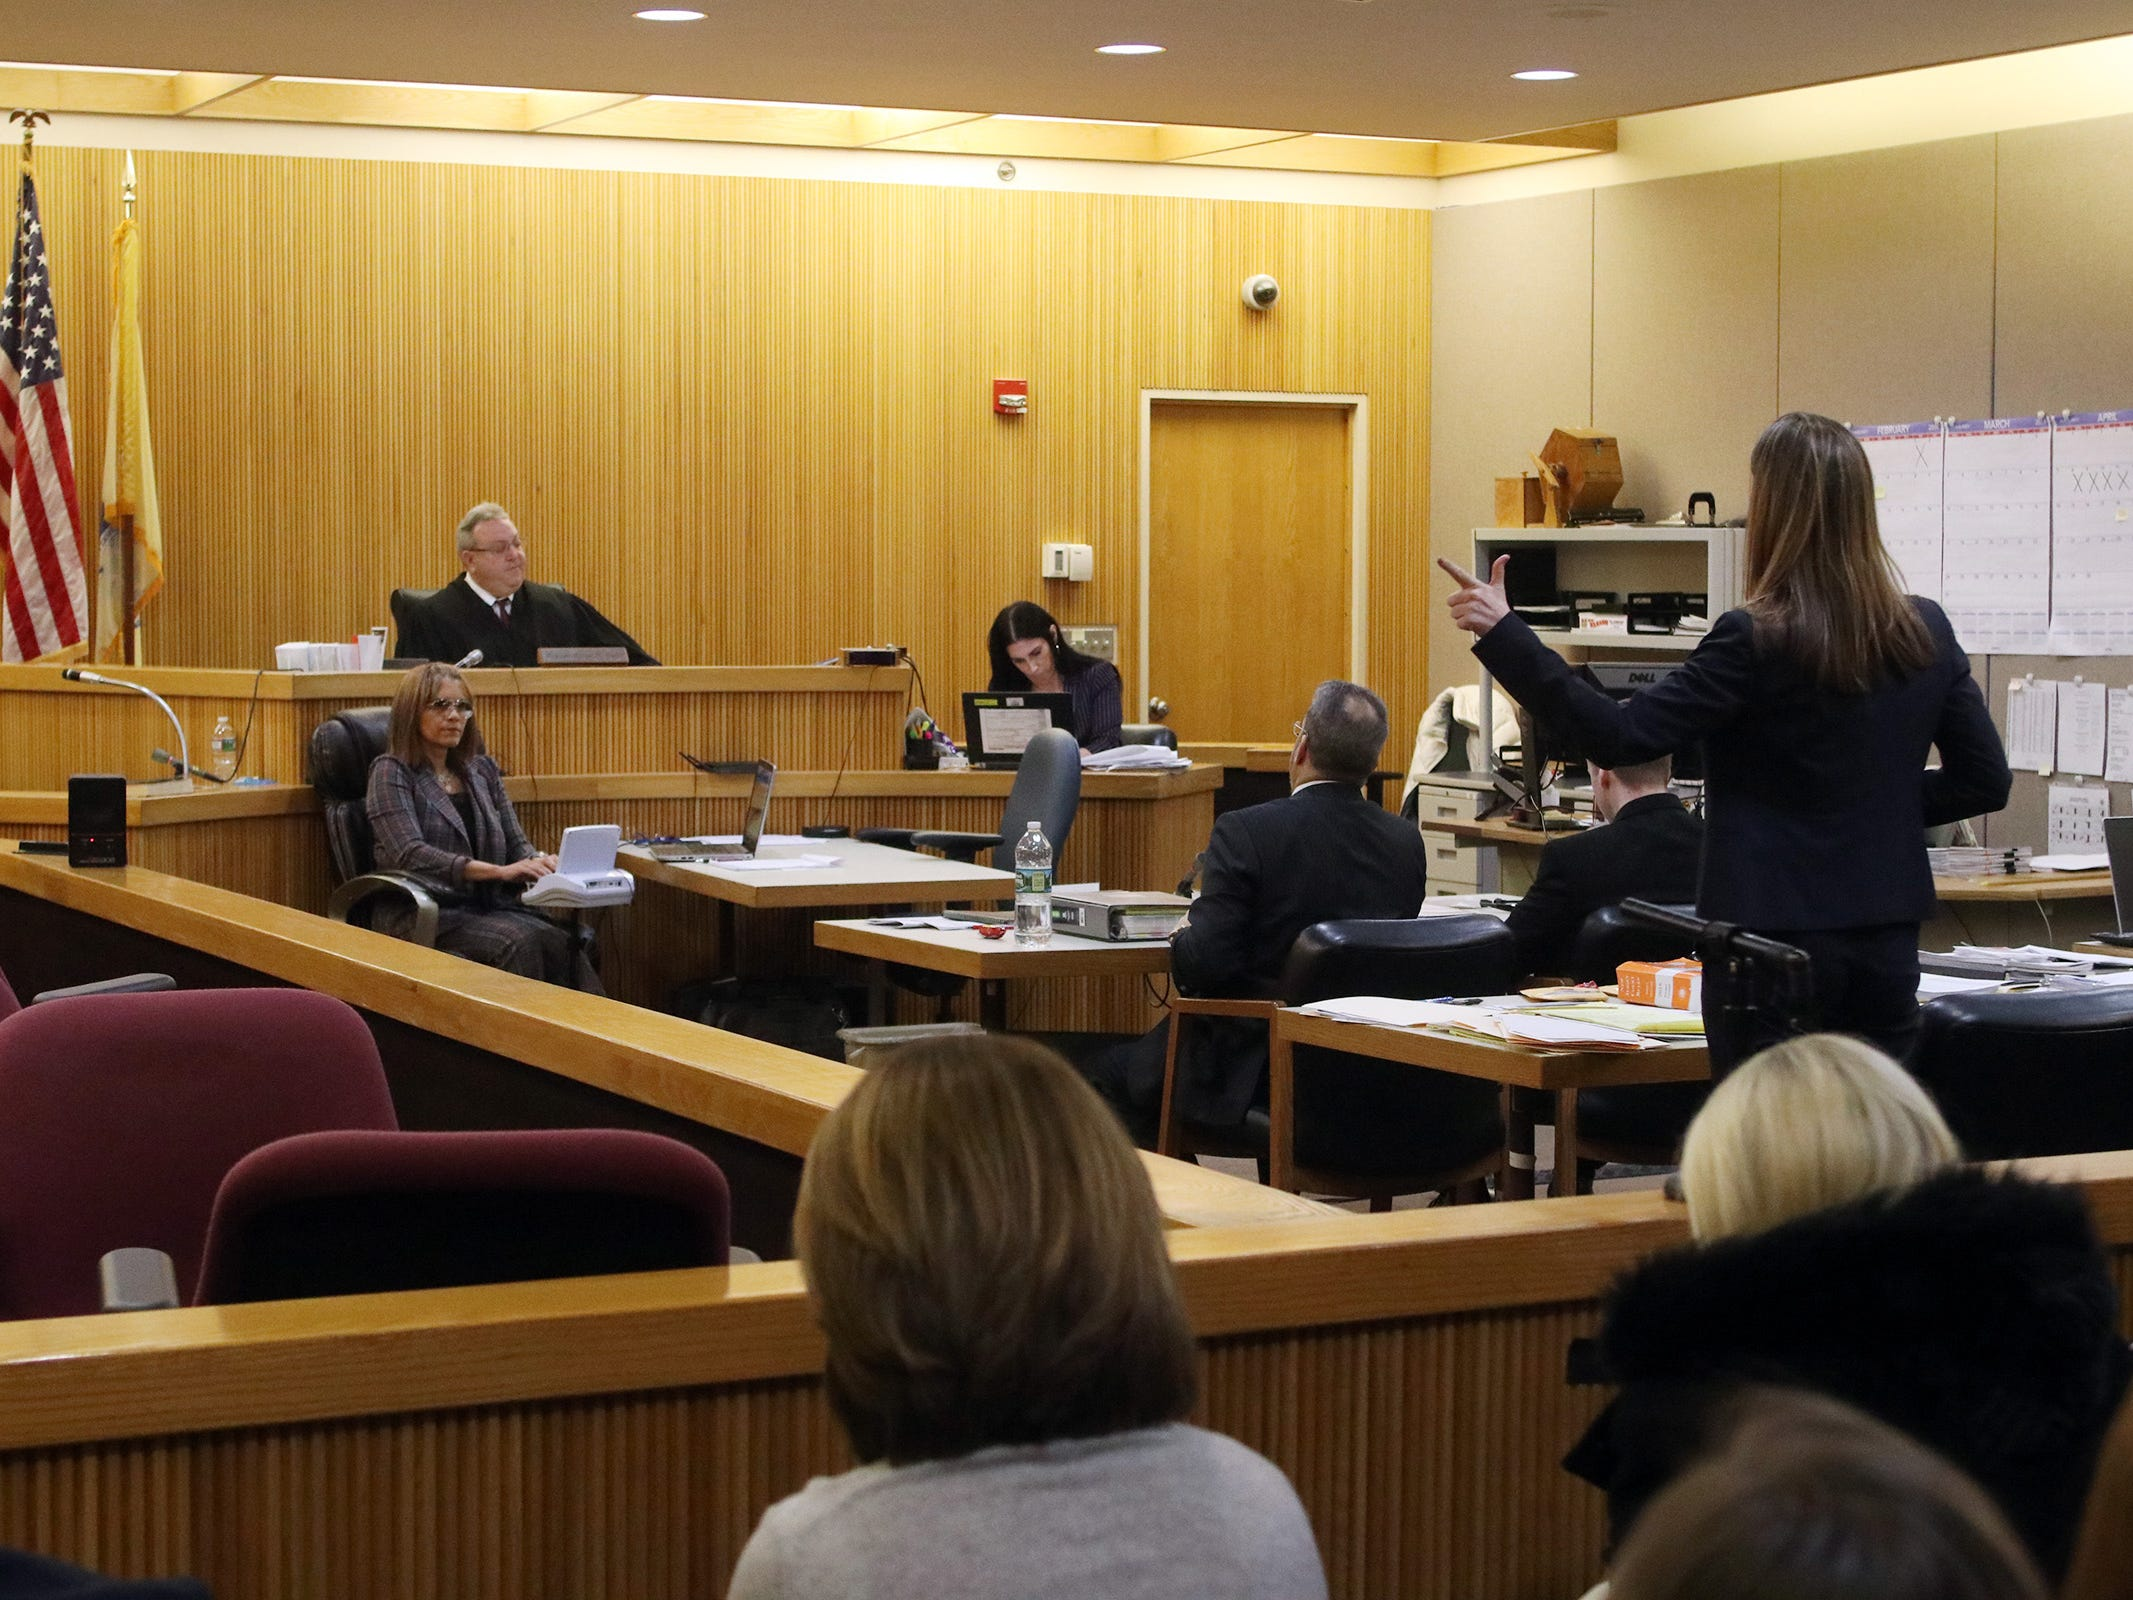 Meghan Doyle, Monmouth County assistant prosecutor, argues the merit of a motion made by Carlos Diaz-Cobo, defense attorney, during the trial of Liam McAtasney, who is charged with the murder of former high school classmate, Sarah Stern, before Superior Court Judge Richard W. English at the Monmouth County Courthouse in Freehold, NJ Wednesday, February 13, 2019. The jury was sent for the day after Carlos Diaz-Cobo, the defense attorney, made a motion for a mistrial over a post made on a juror's Facebook page.